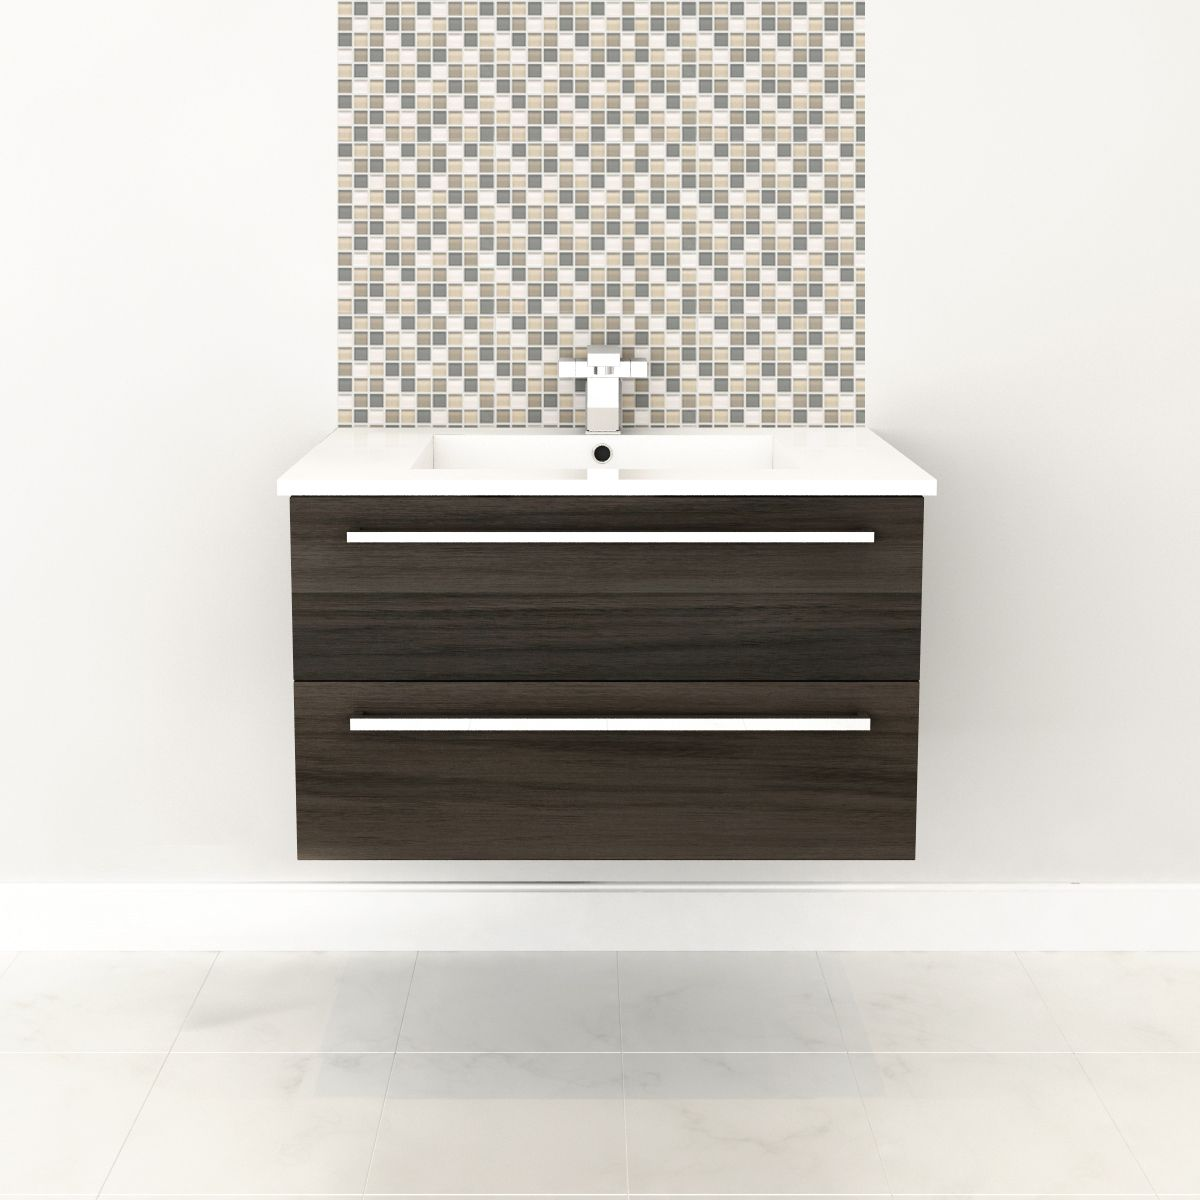 Bathroom vanity collections - Shop Cutler Kitchen Bath Cutler Kitchen Bath Silhouette Collection Wall Hung Vanity With Top At Lowe S Canada Find Our Selection Of Bathroom Vanities